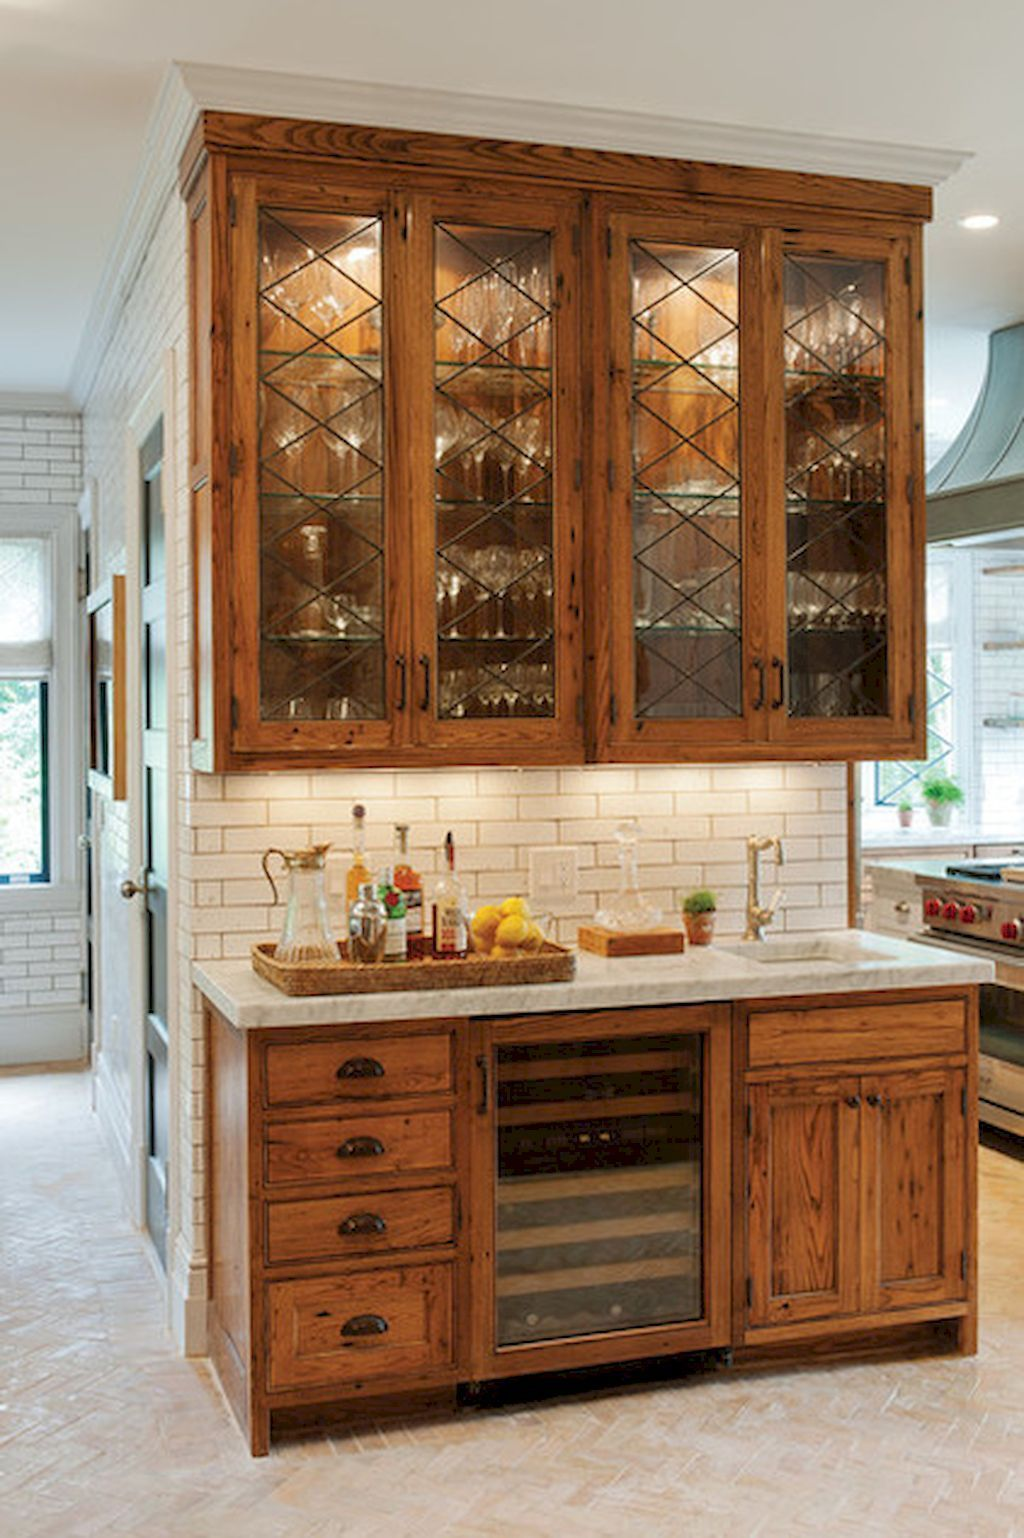 80 Rustic Kitchen Cabinet Makeover Ideas - Page 80 of 80 - Tigrisiahouse.info